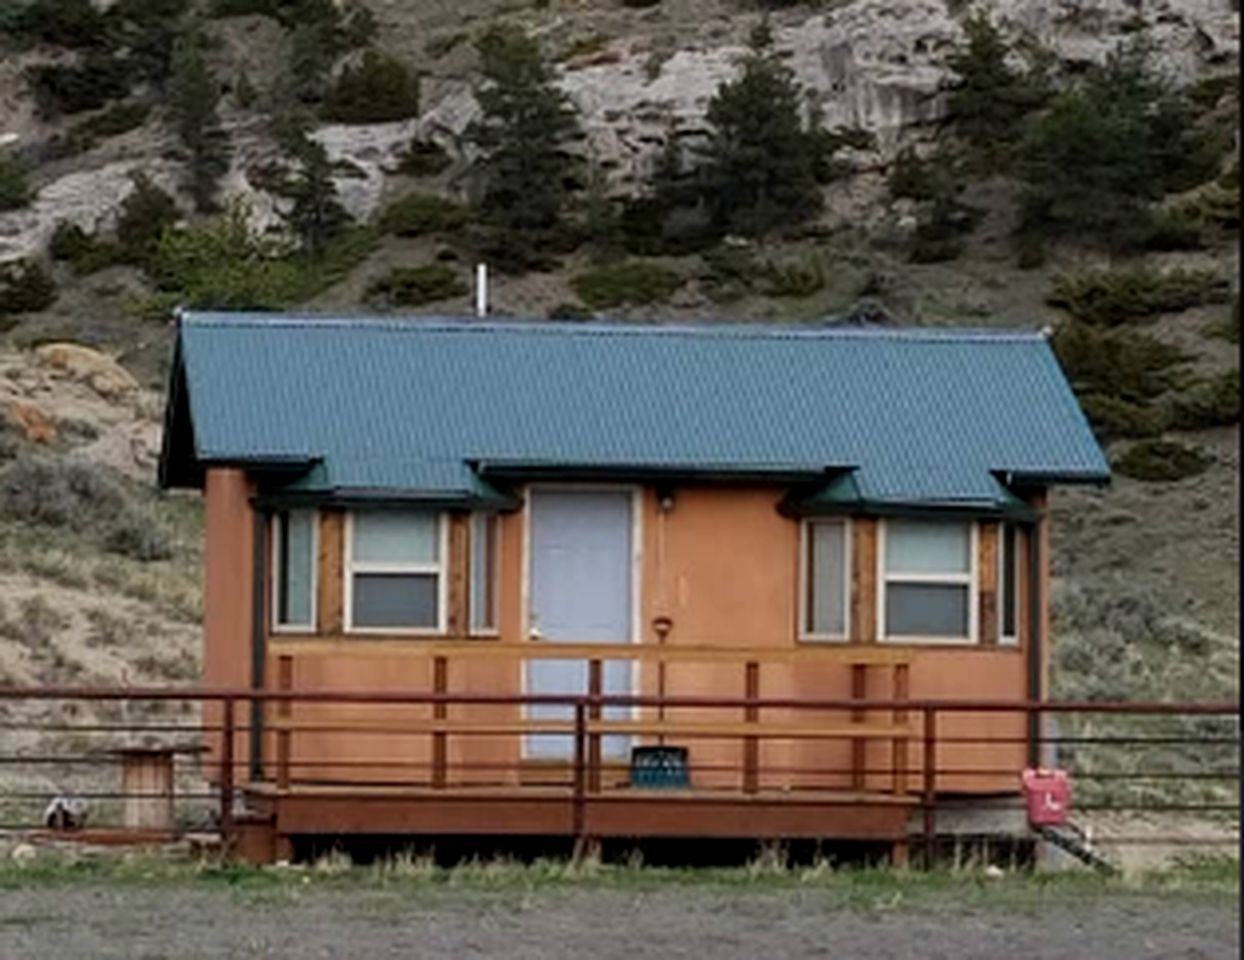 Cabins (Cody, Wyoming, United States)